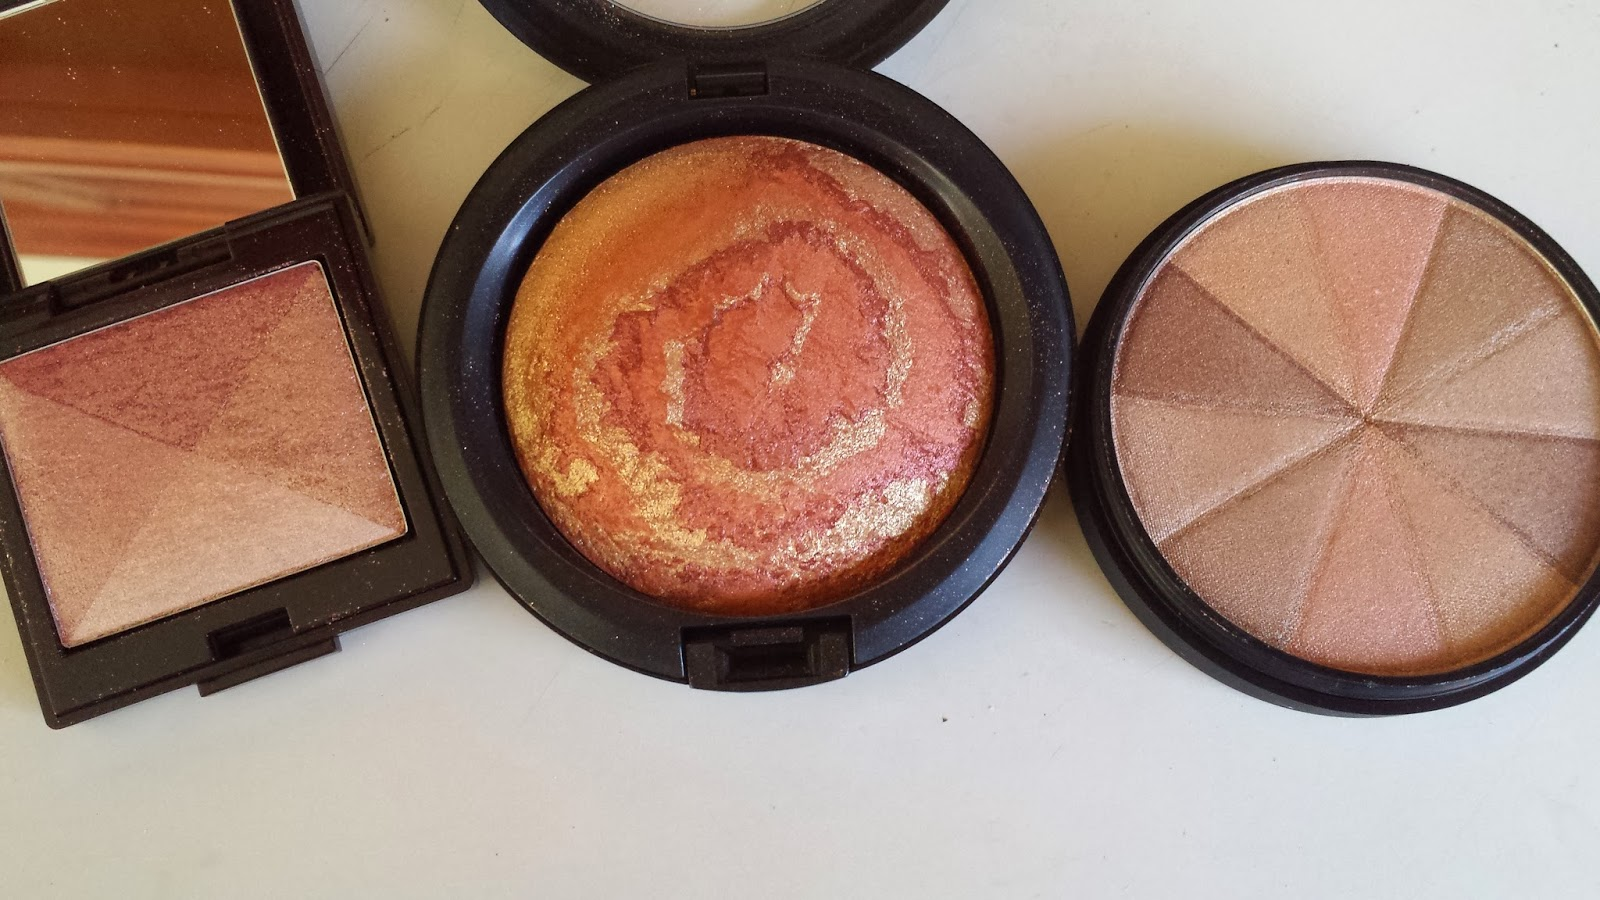 Laura Mercier 'Pink Mosaic' Shimmer Bloc, M.A.C 'Centre of The Universe' Mineralized Skinfinish, Smashbox 'Baked Starburst' www.modenmakeup.com